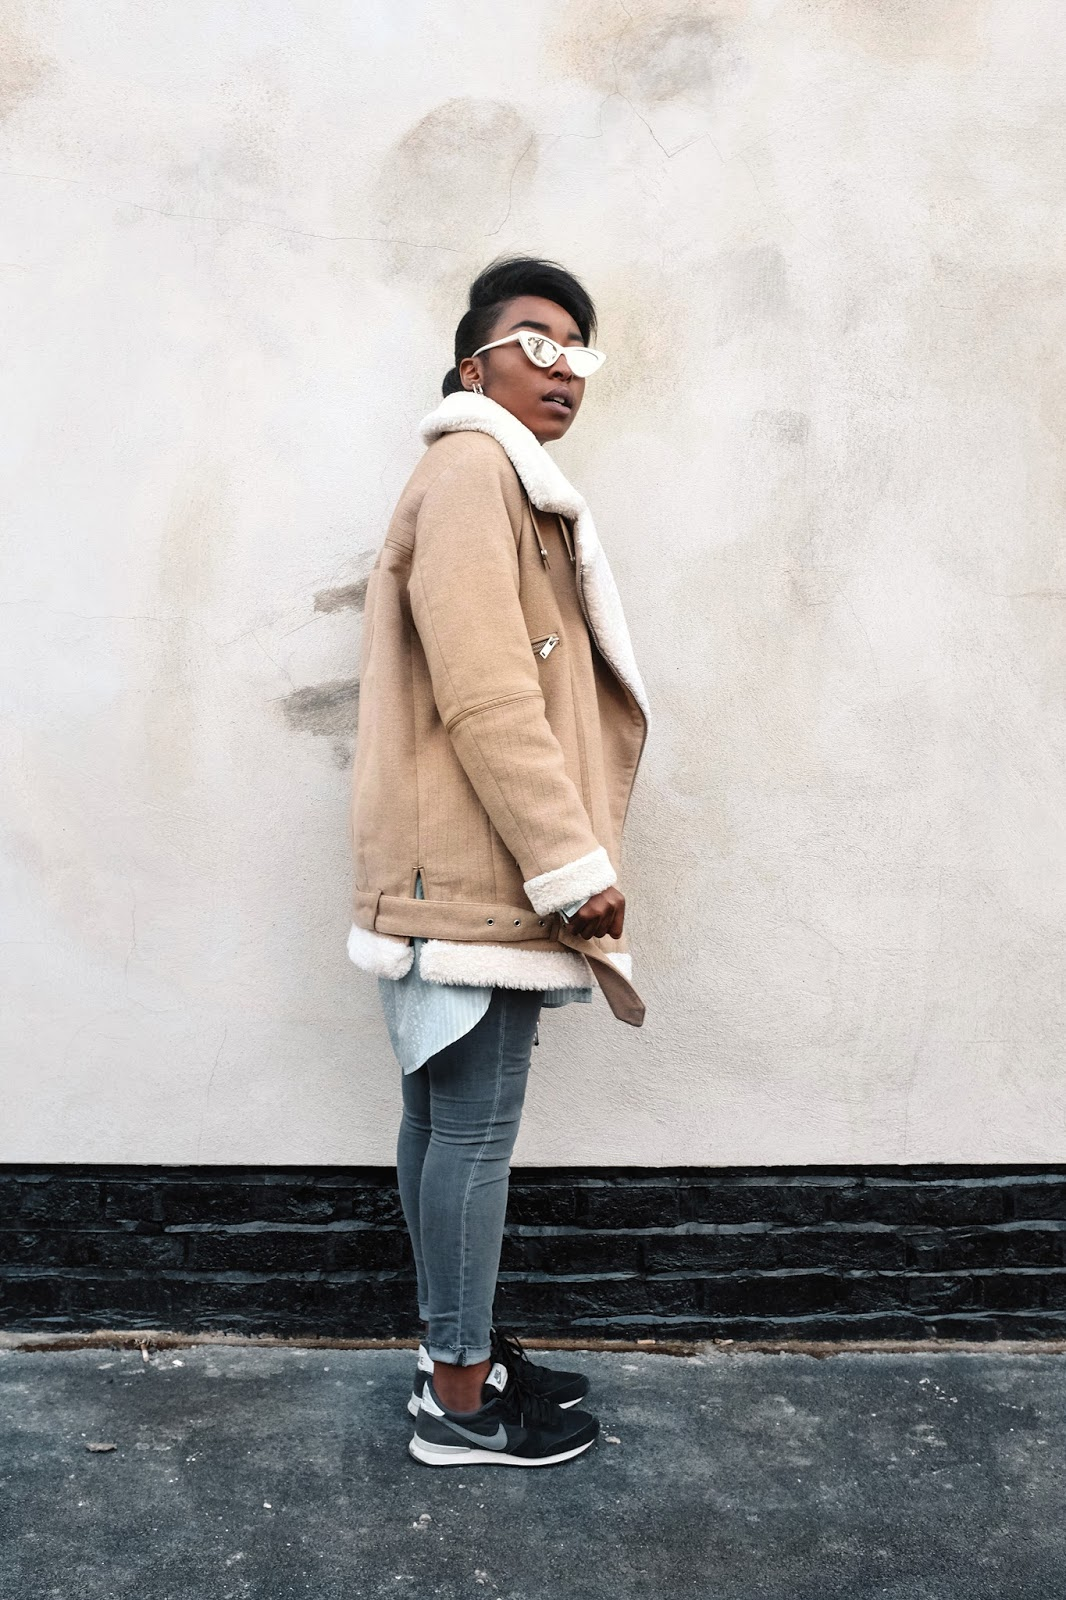 zara sherling coat acne studios velocite alternative adam selman la lolita le specs sunglasses nike internationalist trainers